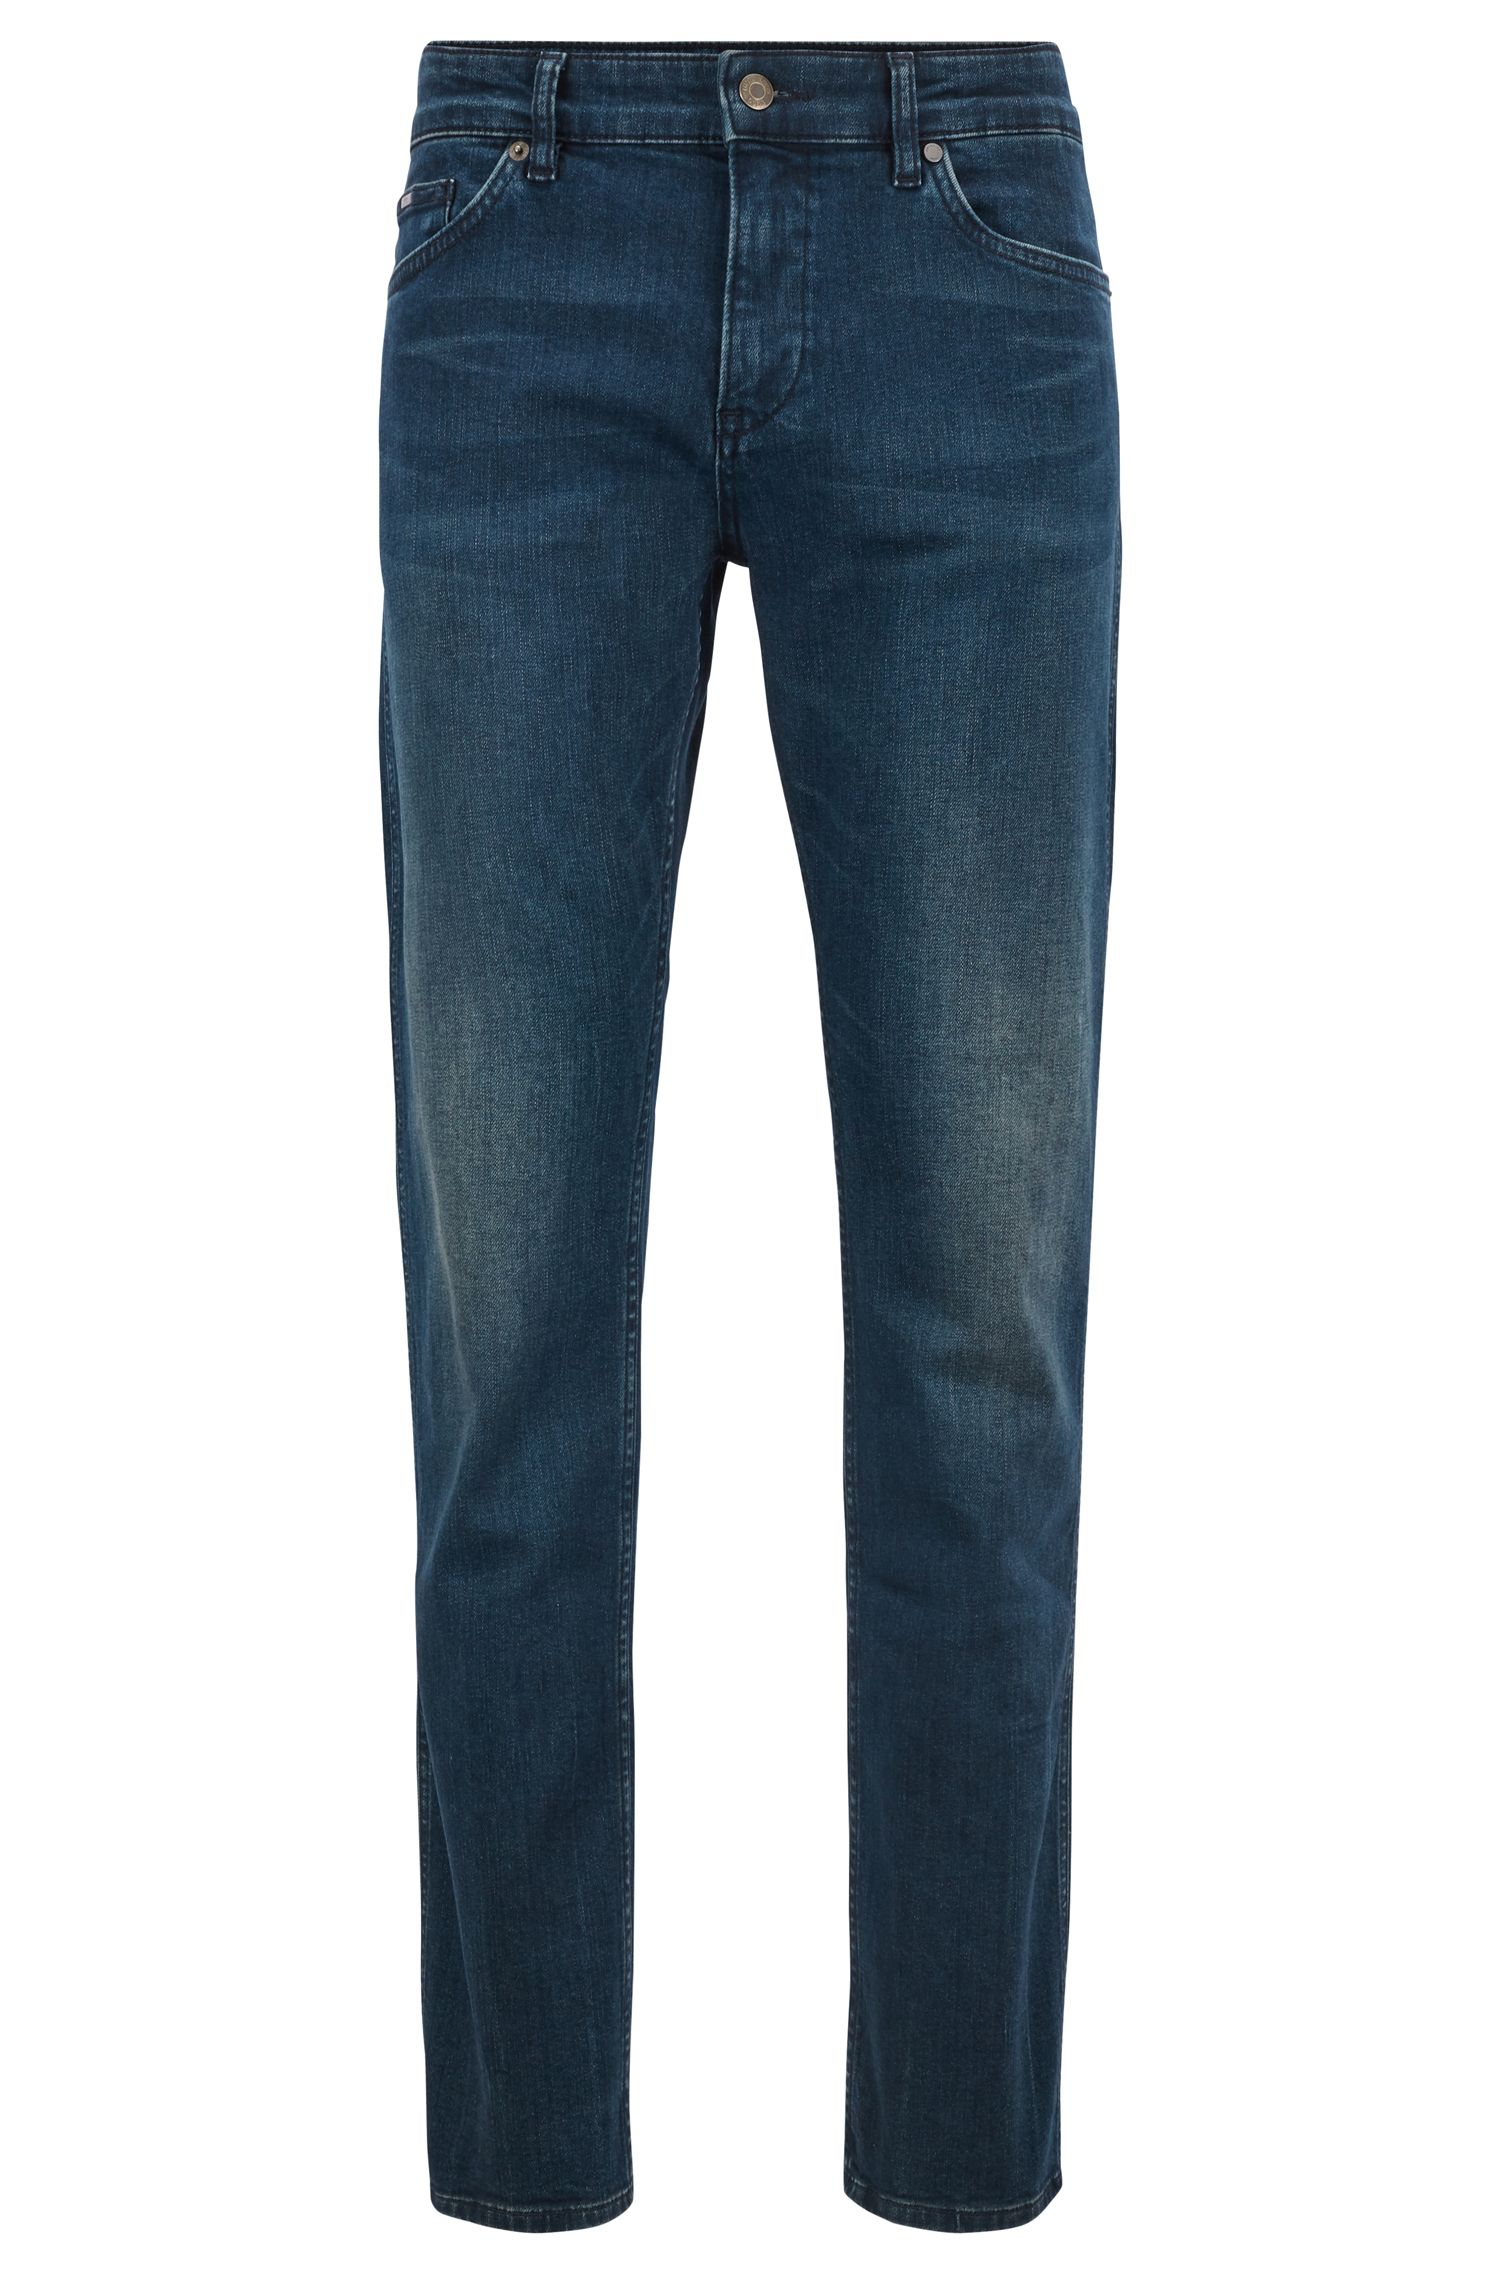 Slim-fit jeans in comfort-stretch green-cast denim, Blue